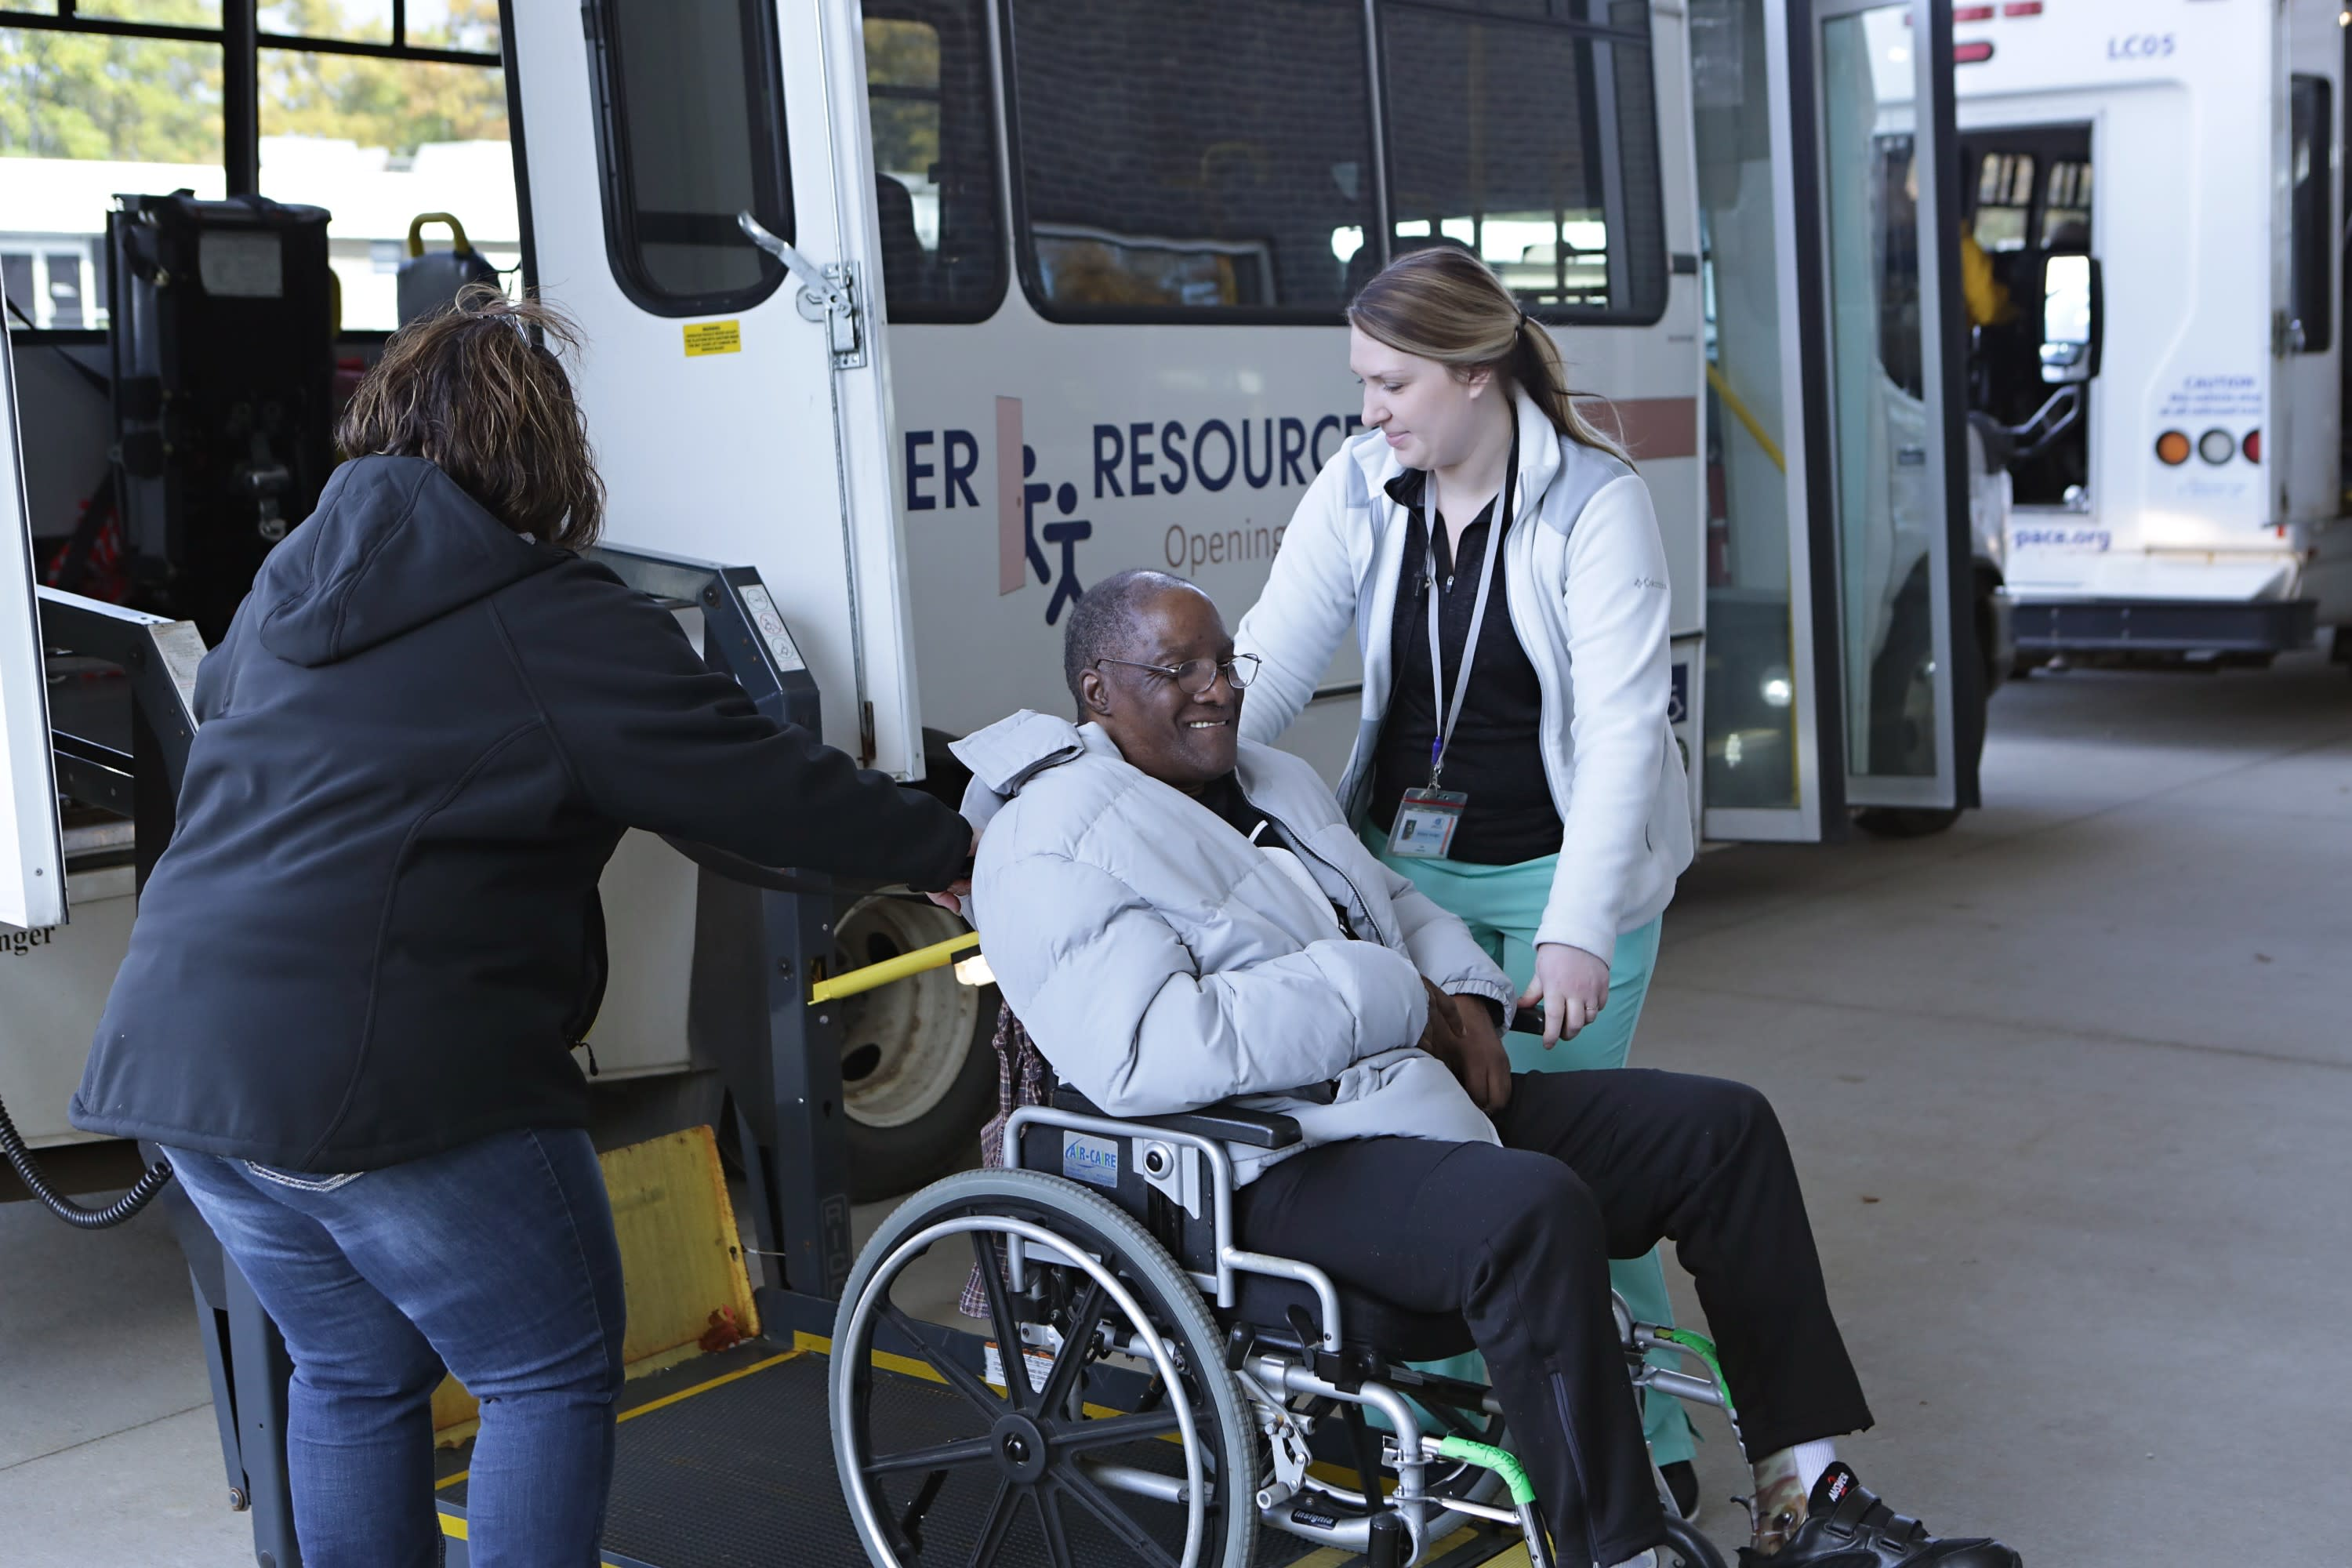 A senior gentleman who is in a wheelchair gets assistance to ride a LifeCircles PACE bus.